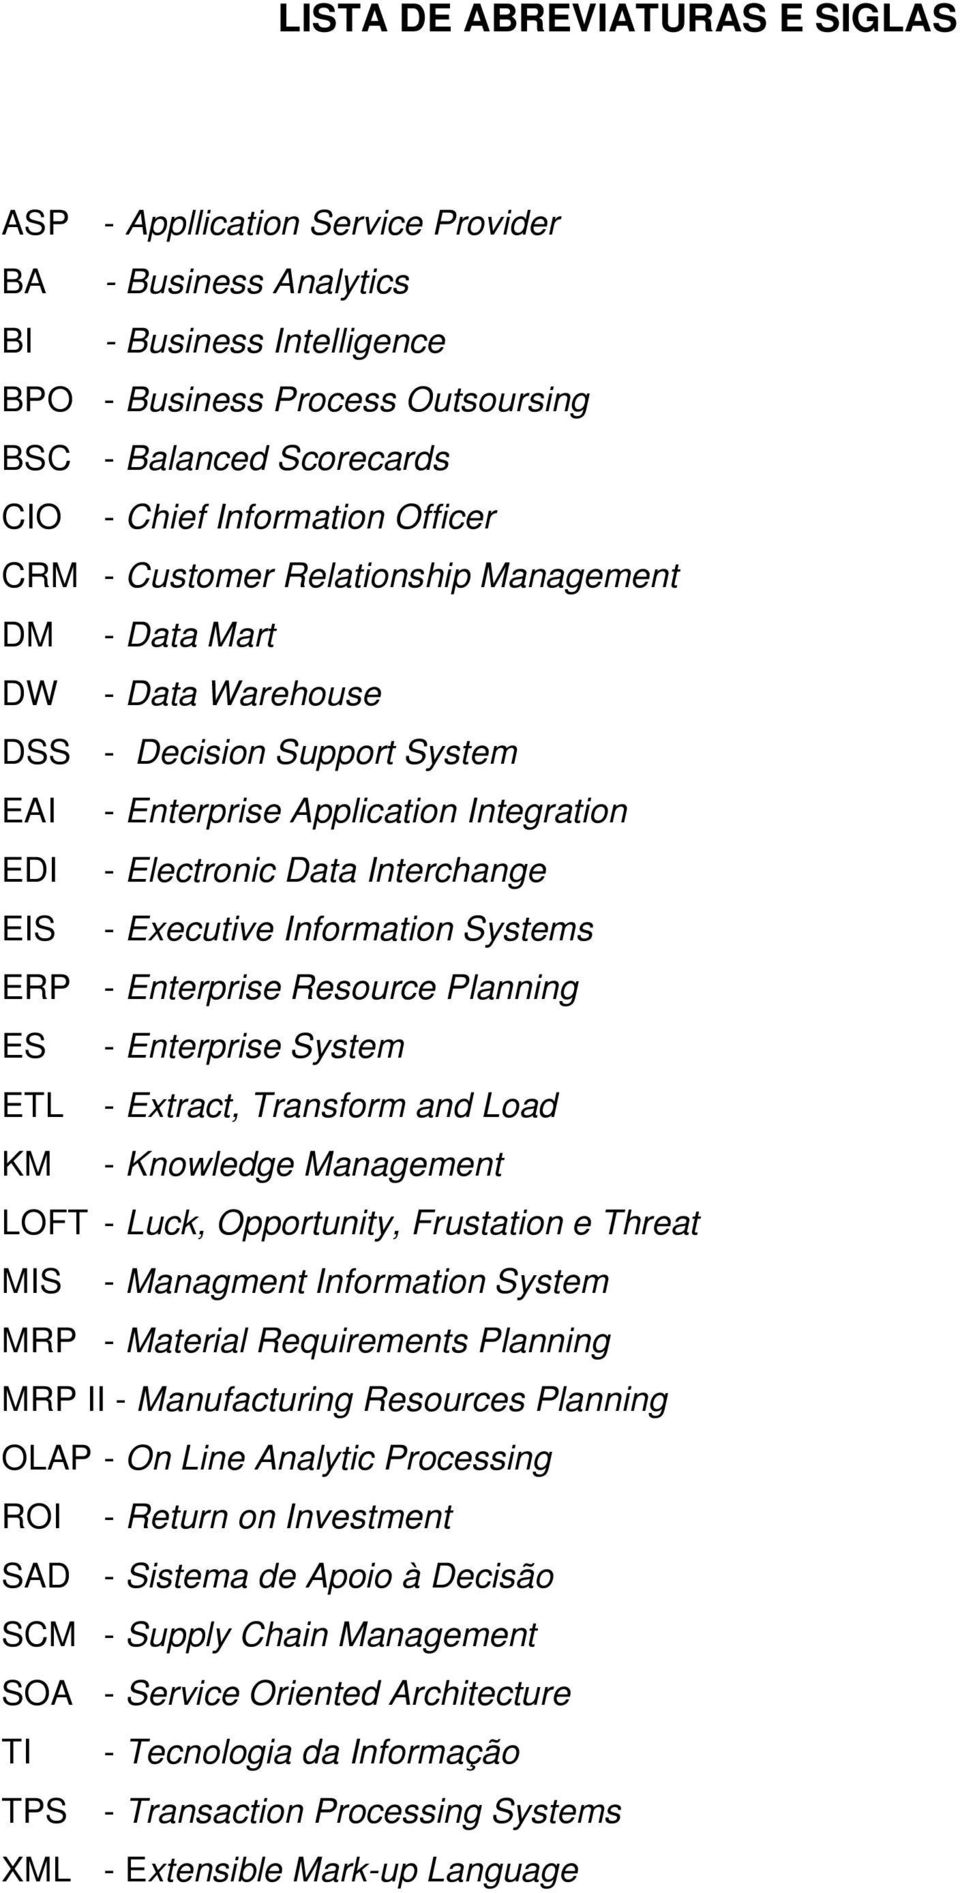 EIS - Executive Information Systems ERP - Enterprise Resource Planning ES - Enterprise System ETL - Extract, Transform and Load KM - Knowledge Management LOFT - Luck, Opportunity, Frustation e Threat